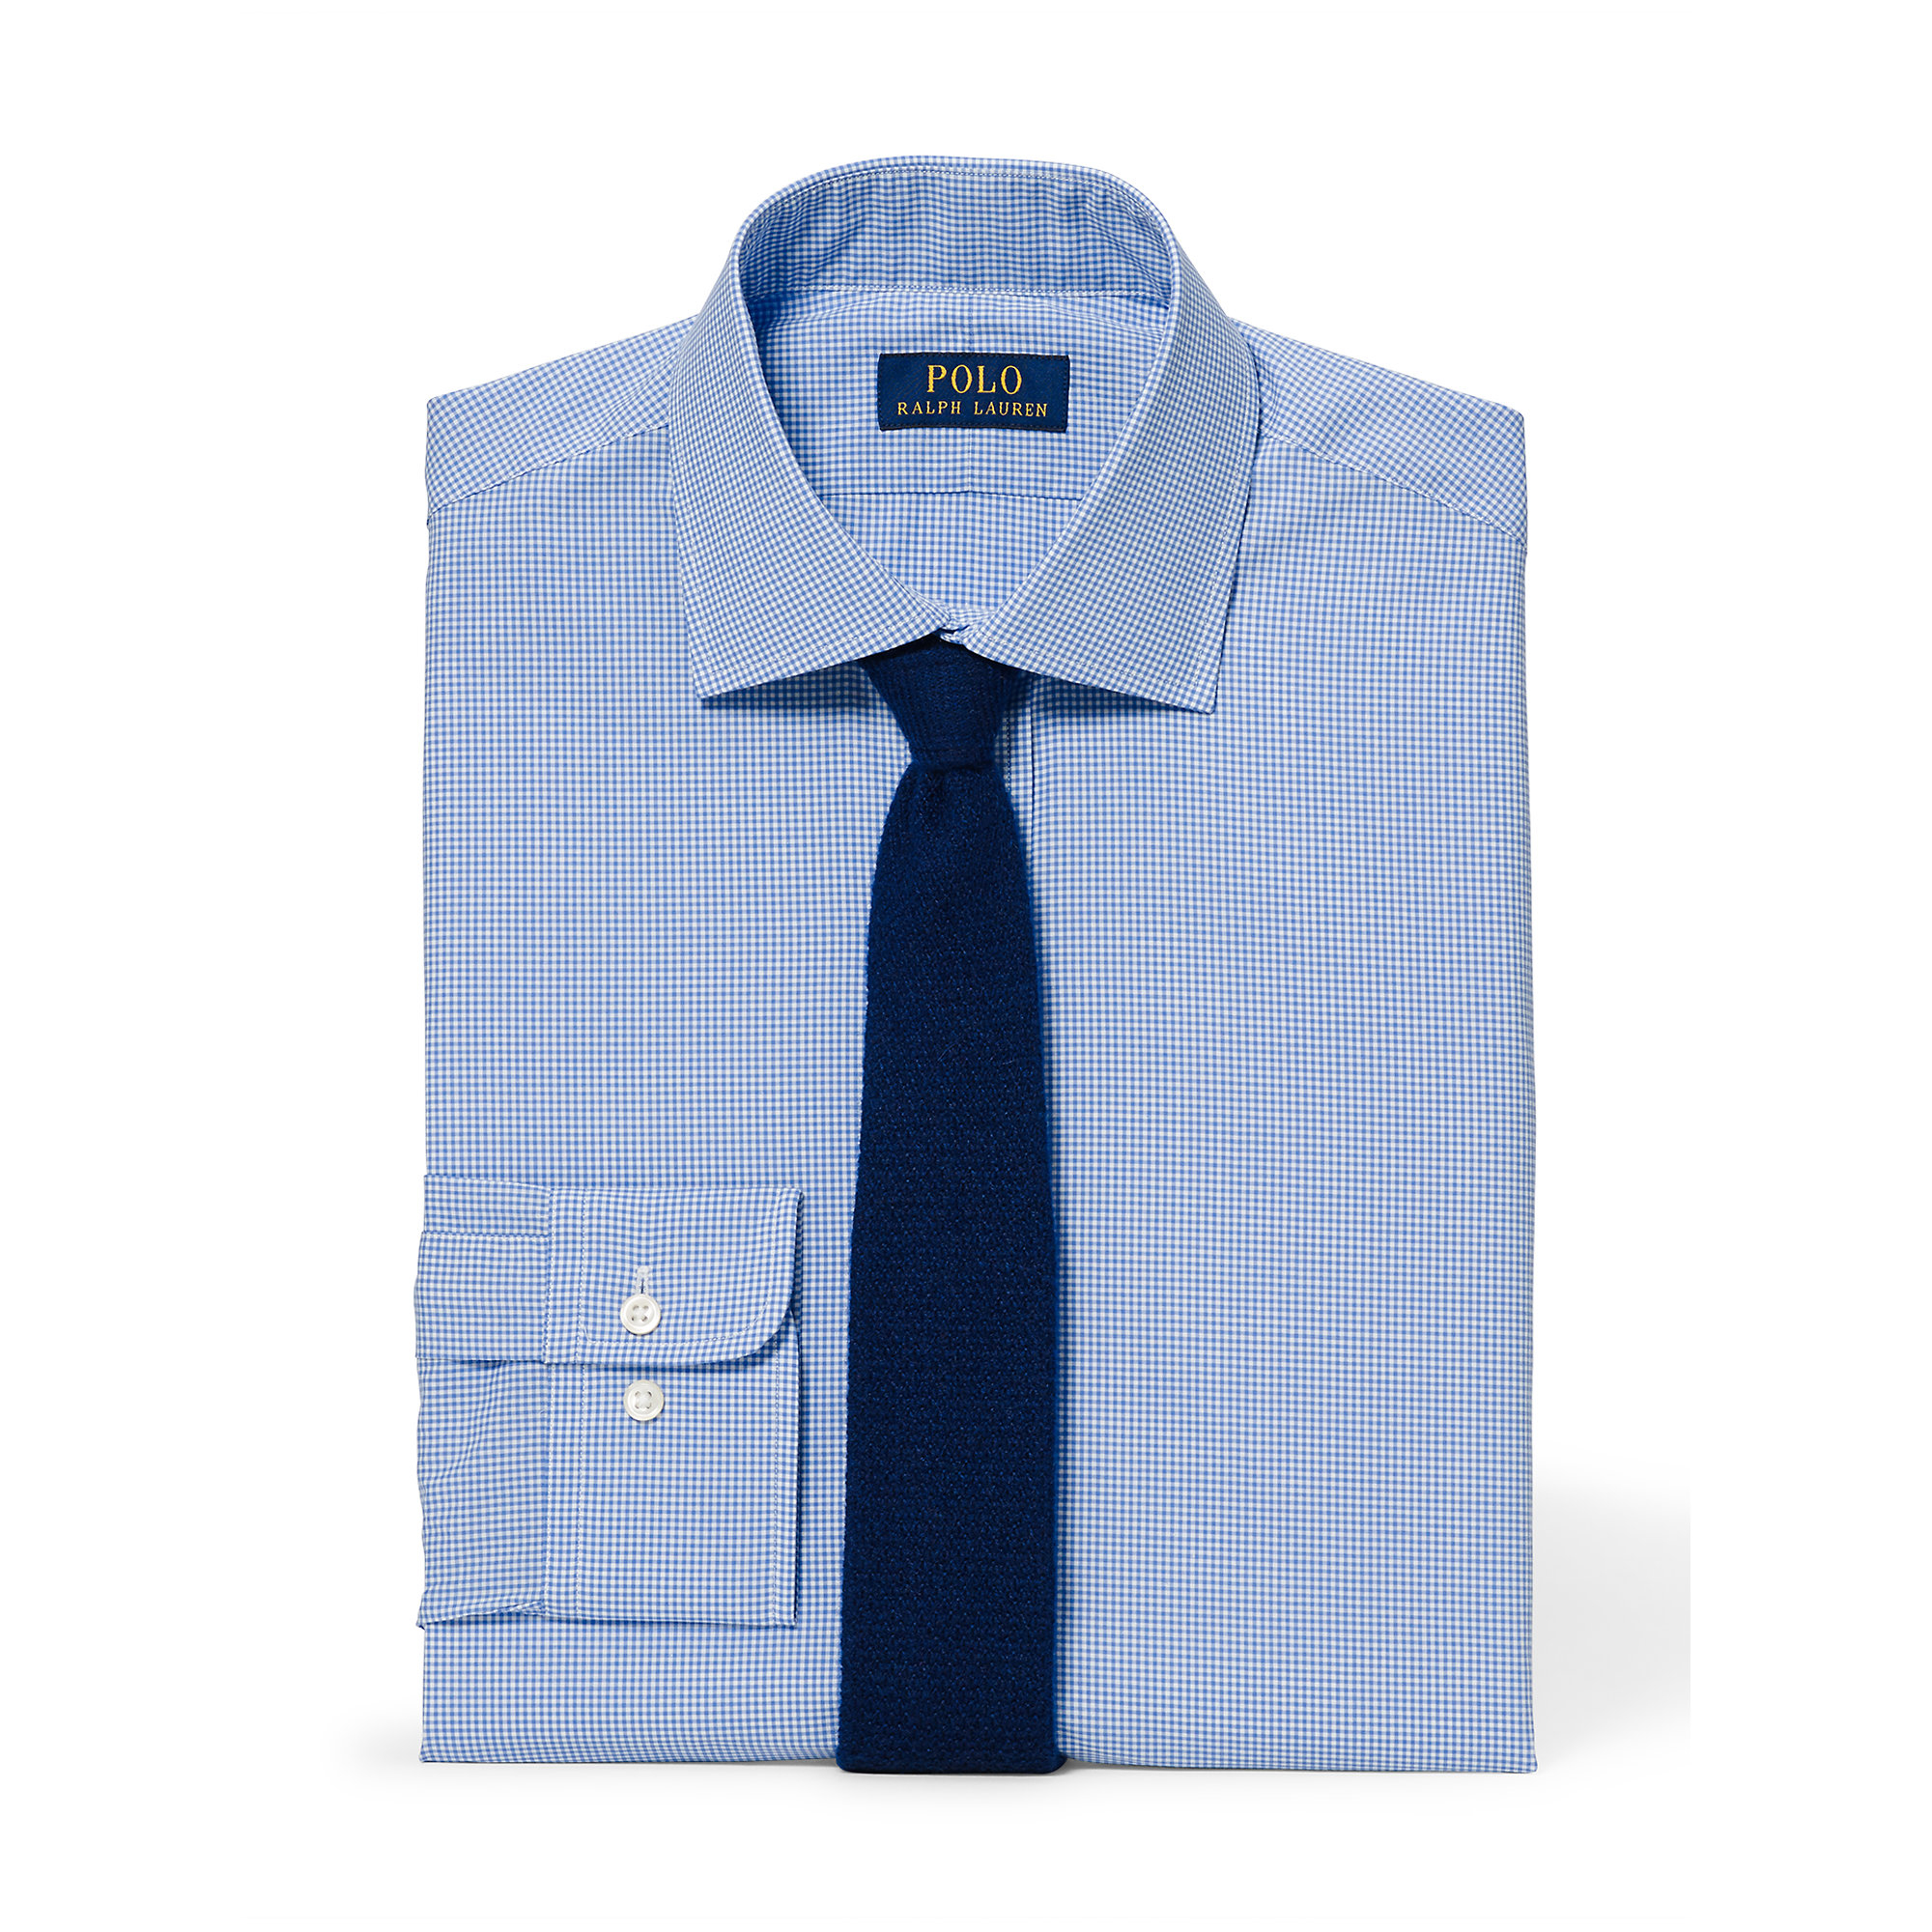 polo ralph lauren slim fit pinpoint oxford shirt in blue for men. Black Bedroom Furniture Sets. Home Design Ideas